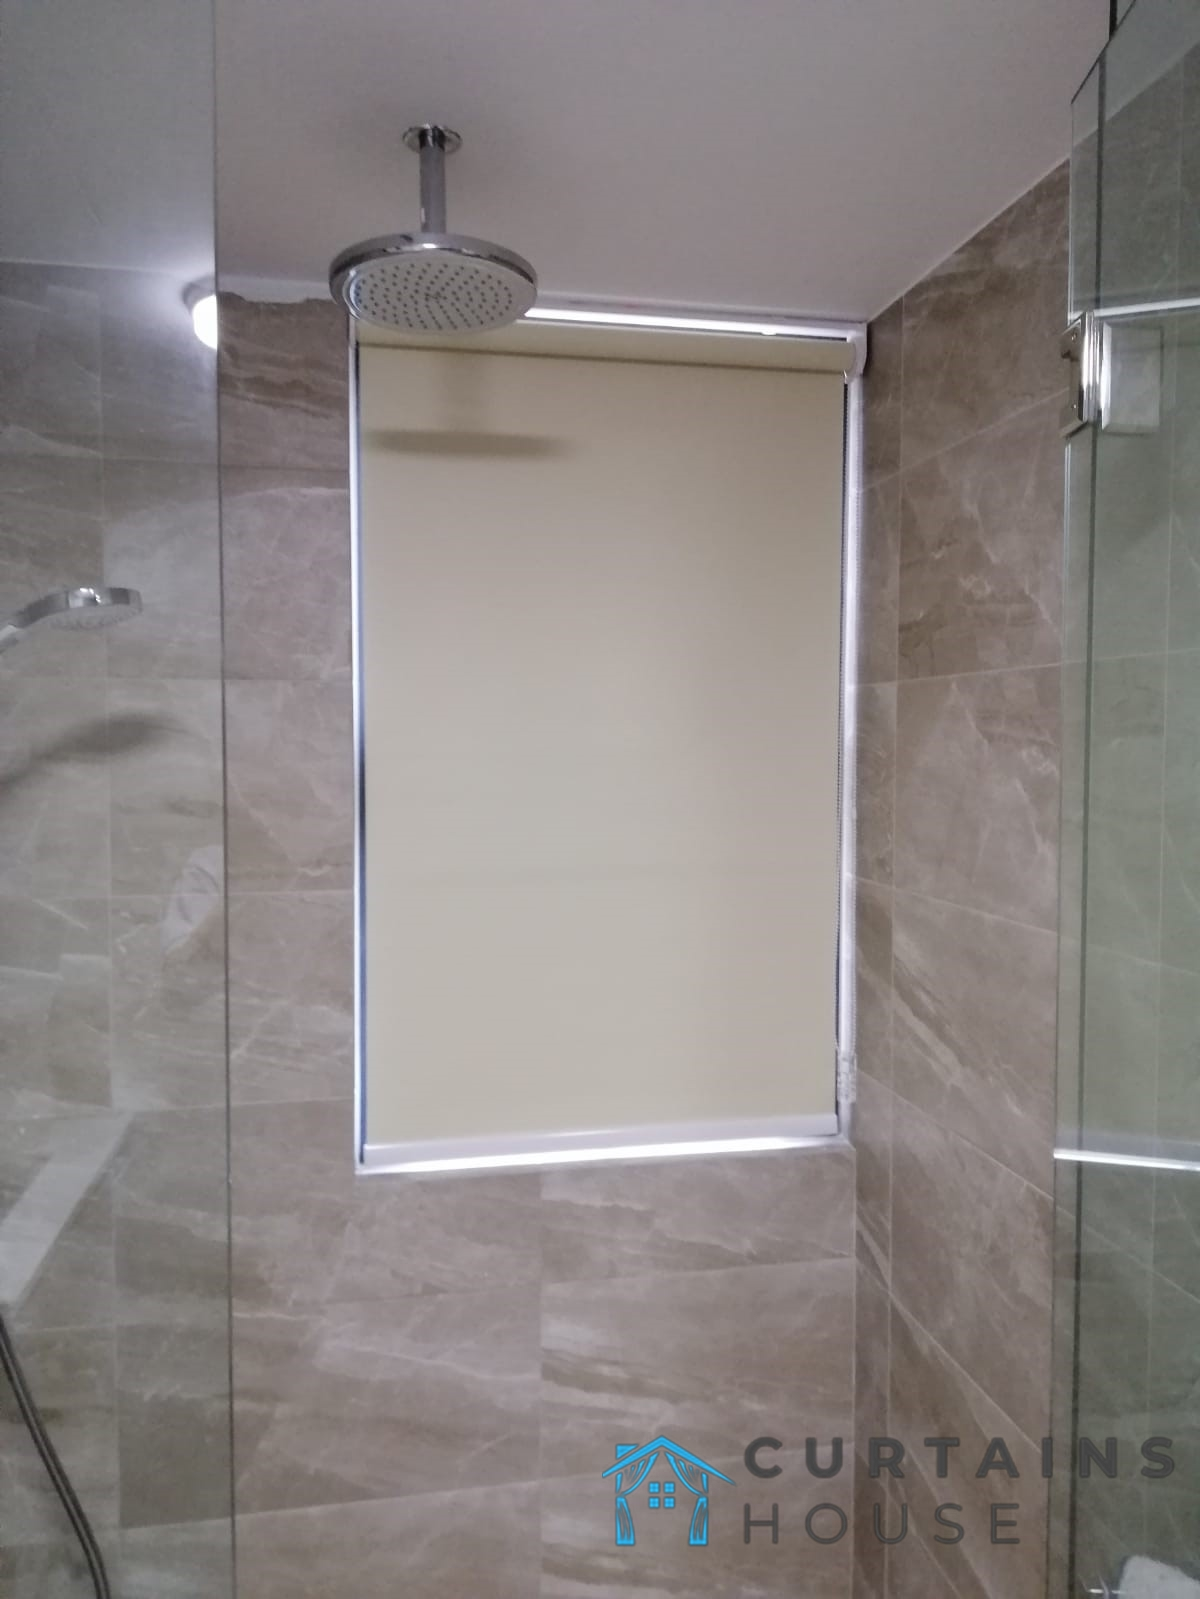 Shower Roller Blinds Bathroom Blinds Installation Curtains House Singapore Condo – Robertson Quay